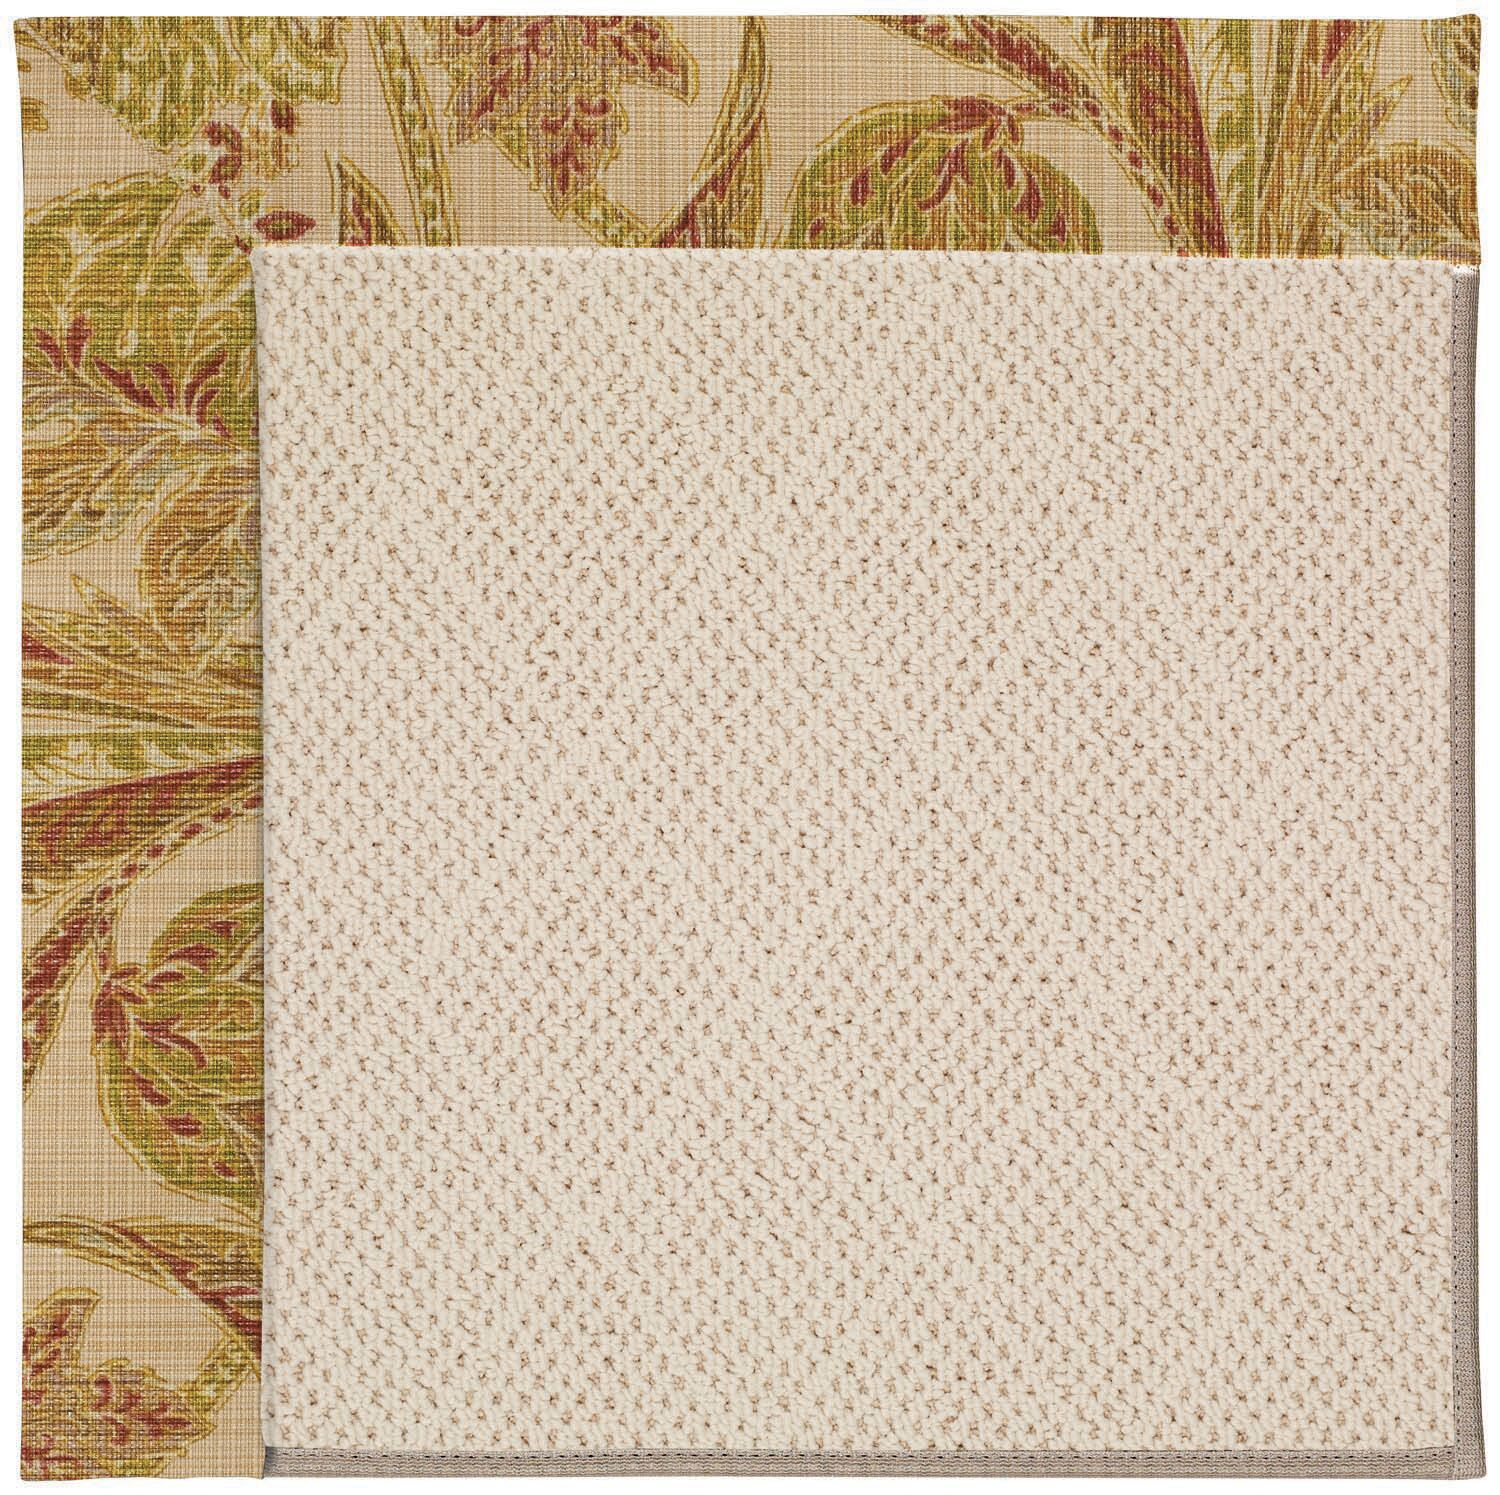 Lisle Light Beige Indoor/Outdoor Area Rug Rug Size: Rectangle 2' x 3'